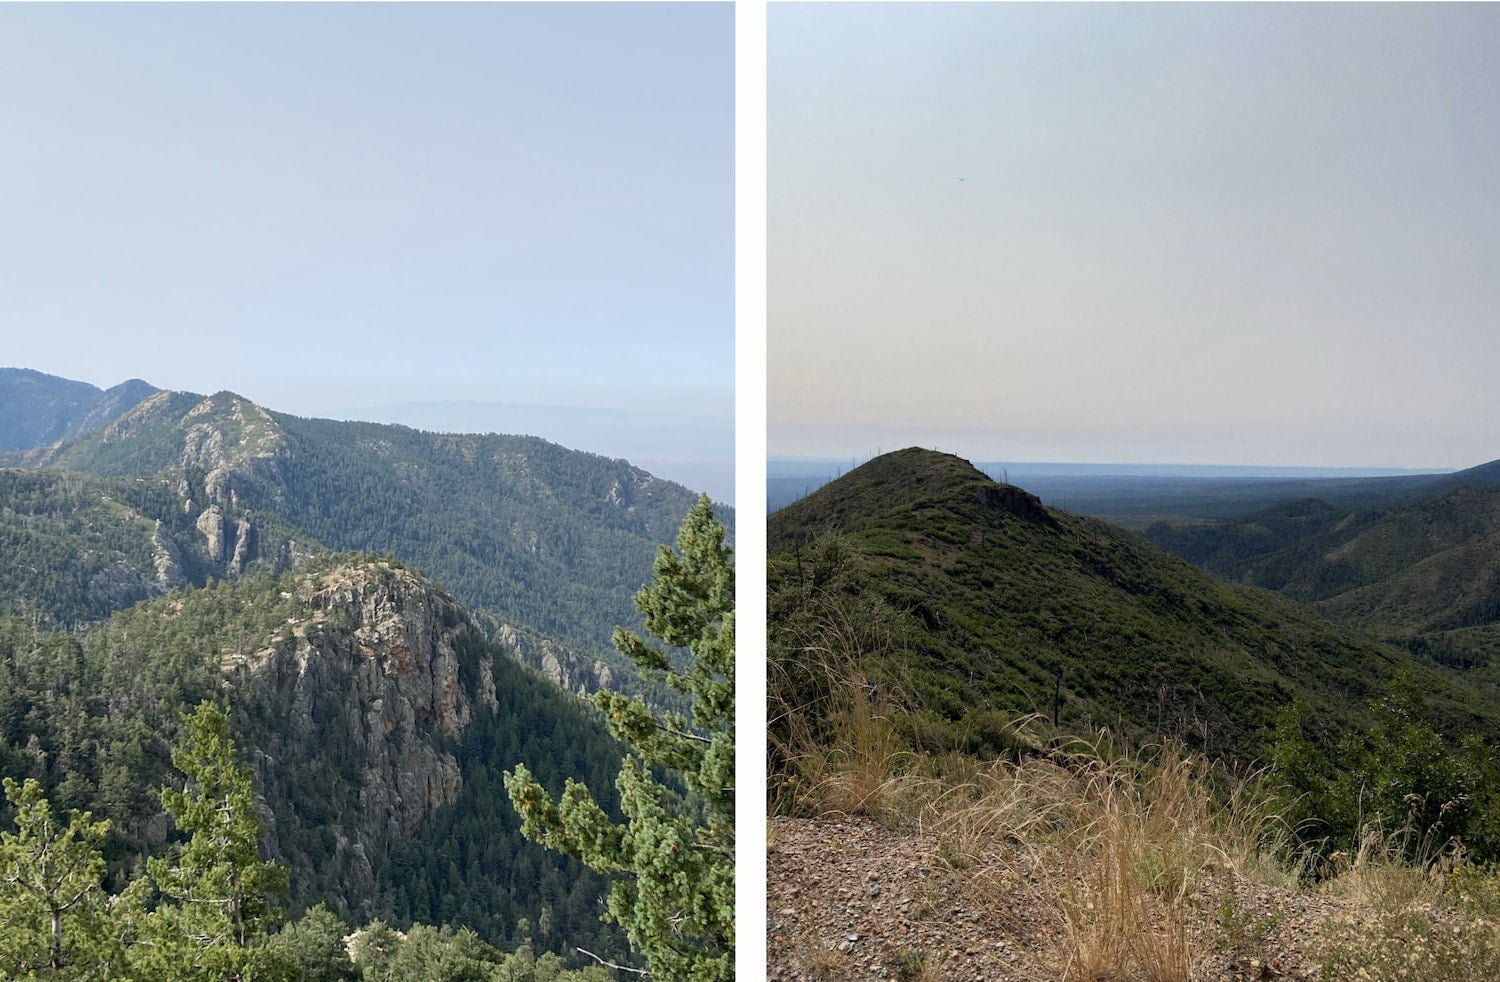 side by side images of cibola national forest